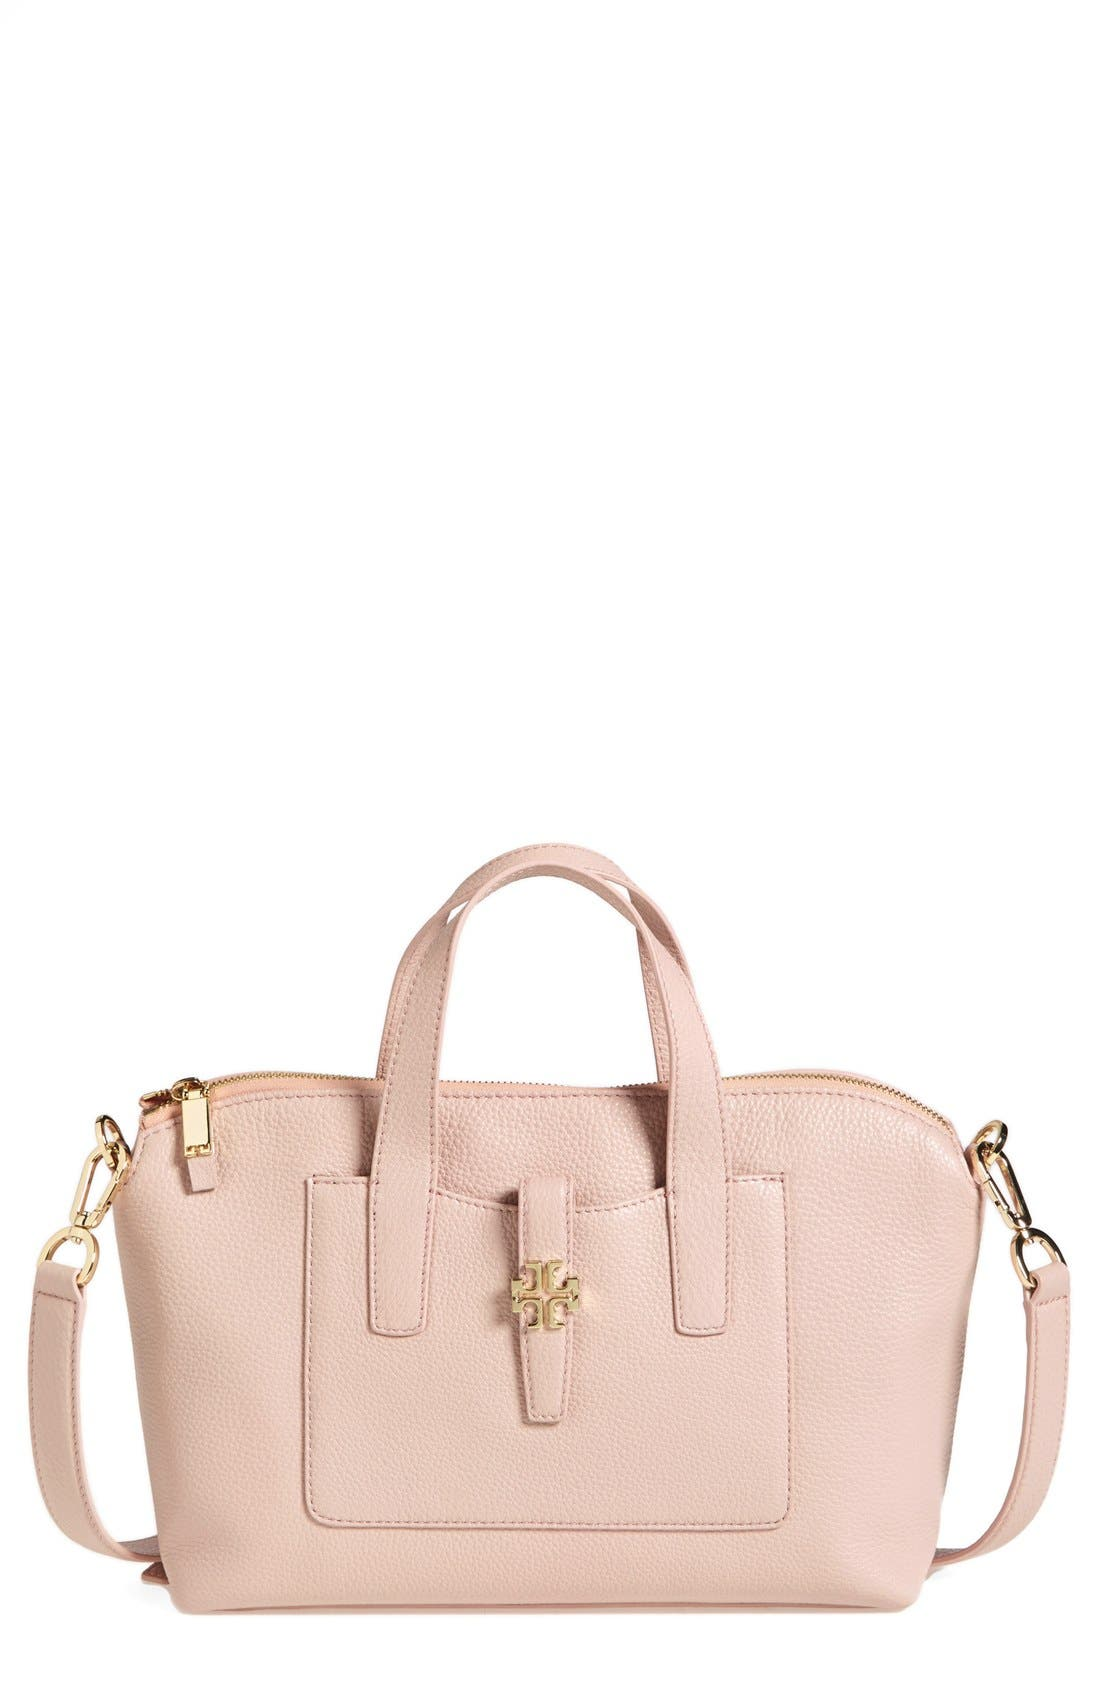 Alternate Image 1 Selected - Tory Burch 'Plaque' Satchel